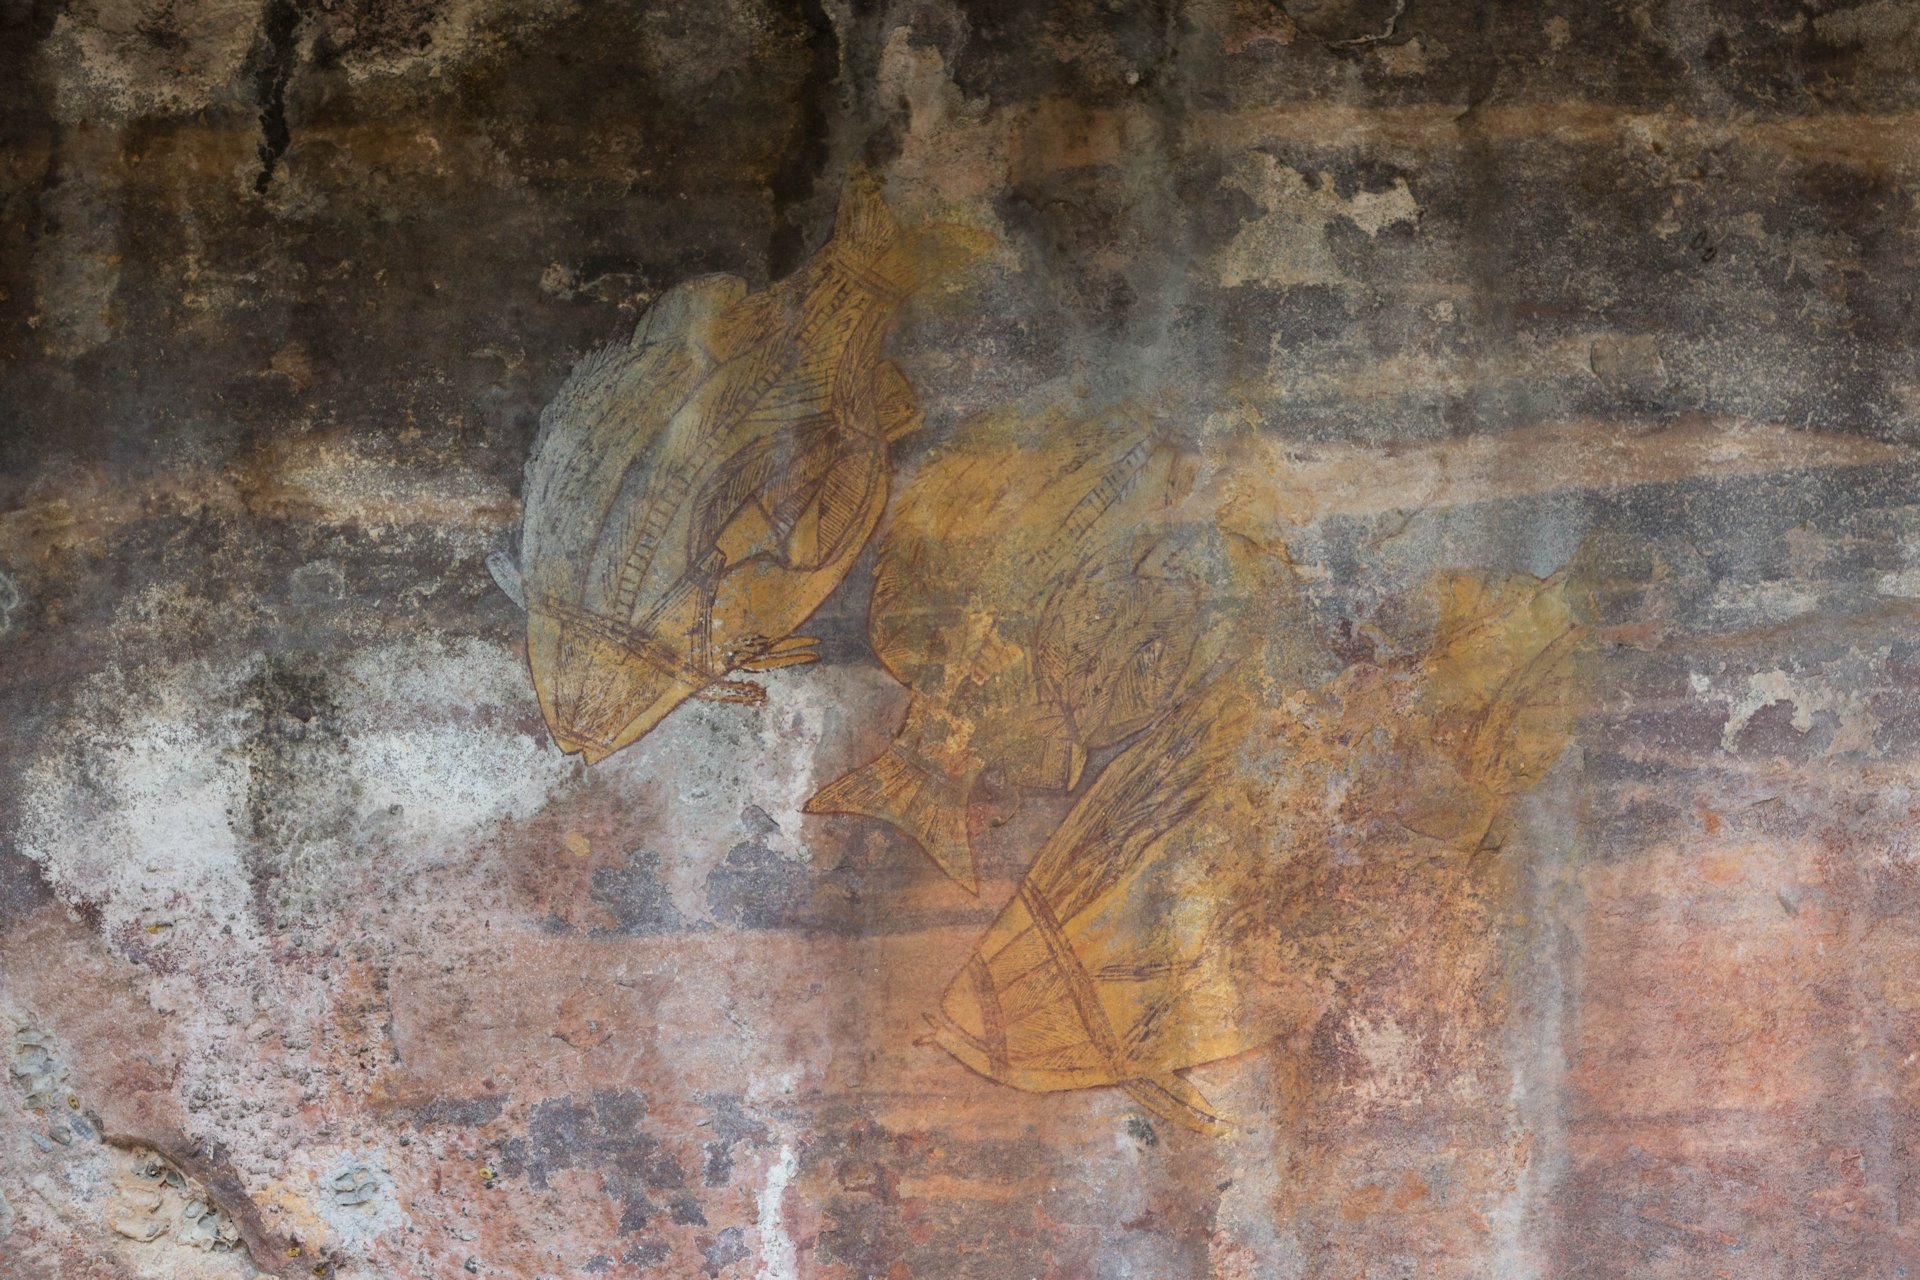 Aboriginal paintings showing Barramundi fish